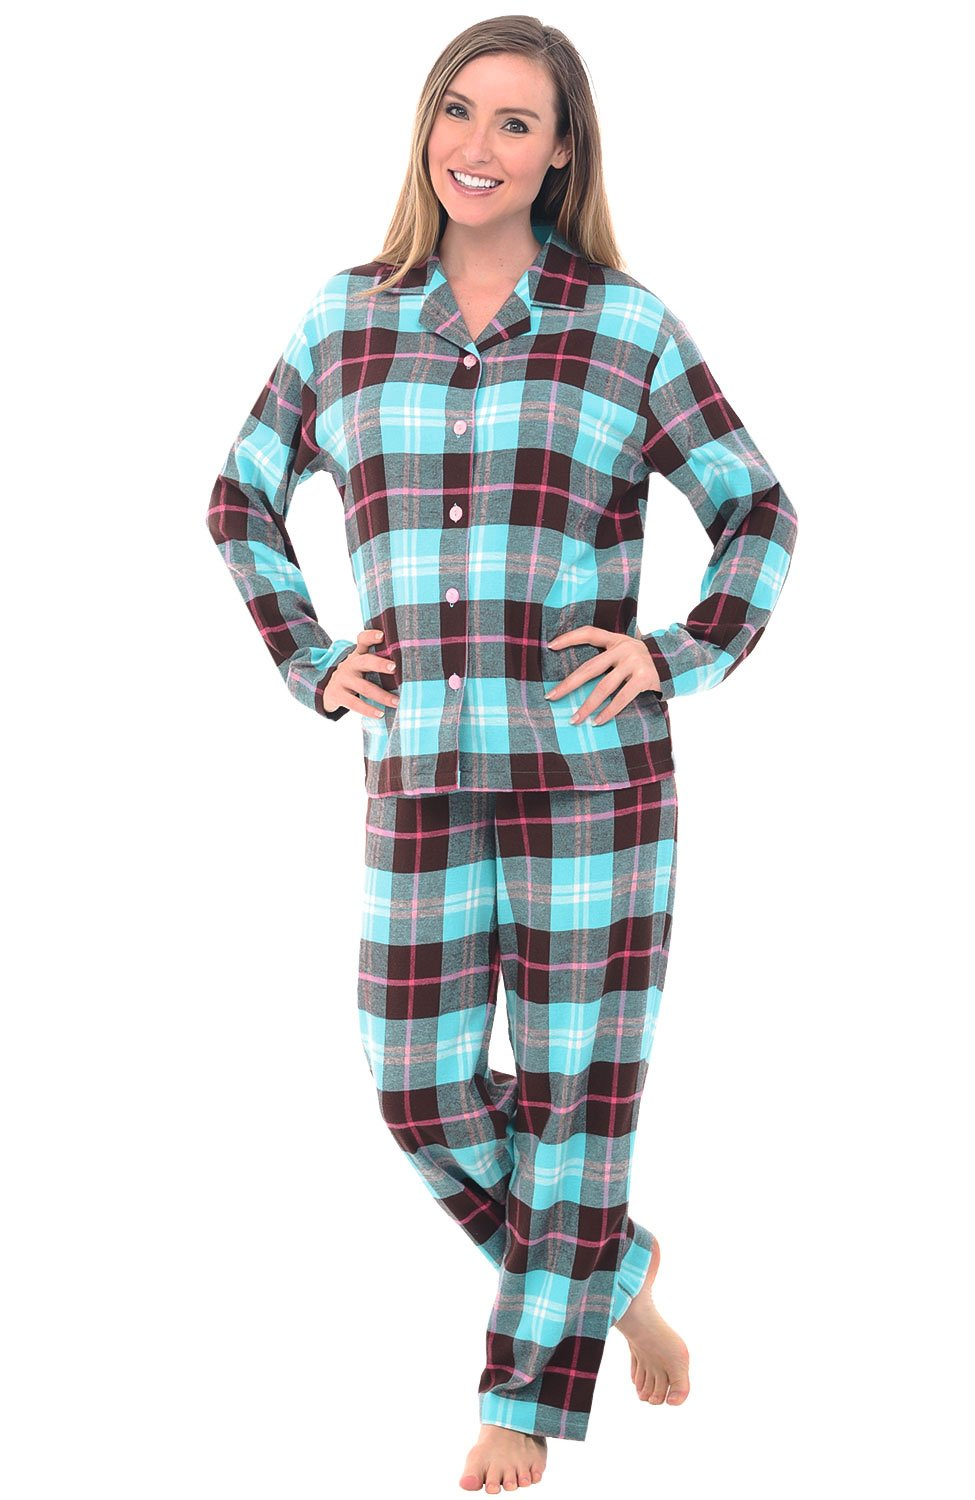 626329a9a5fd Galleon - Alexander Del Rossa Womens Flannel Pajamas